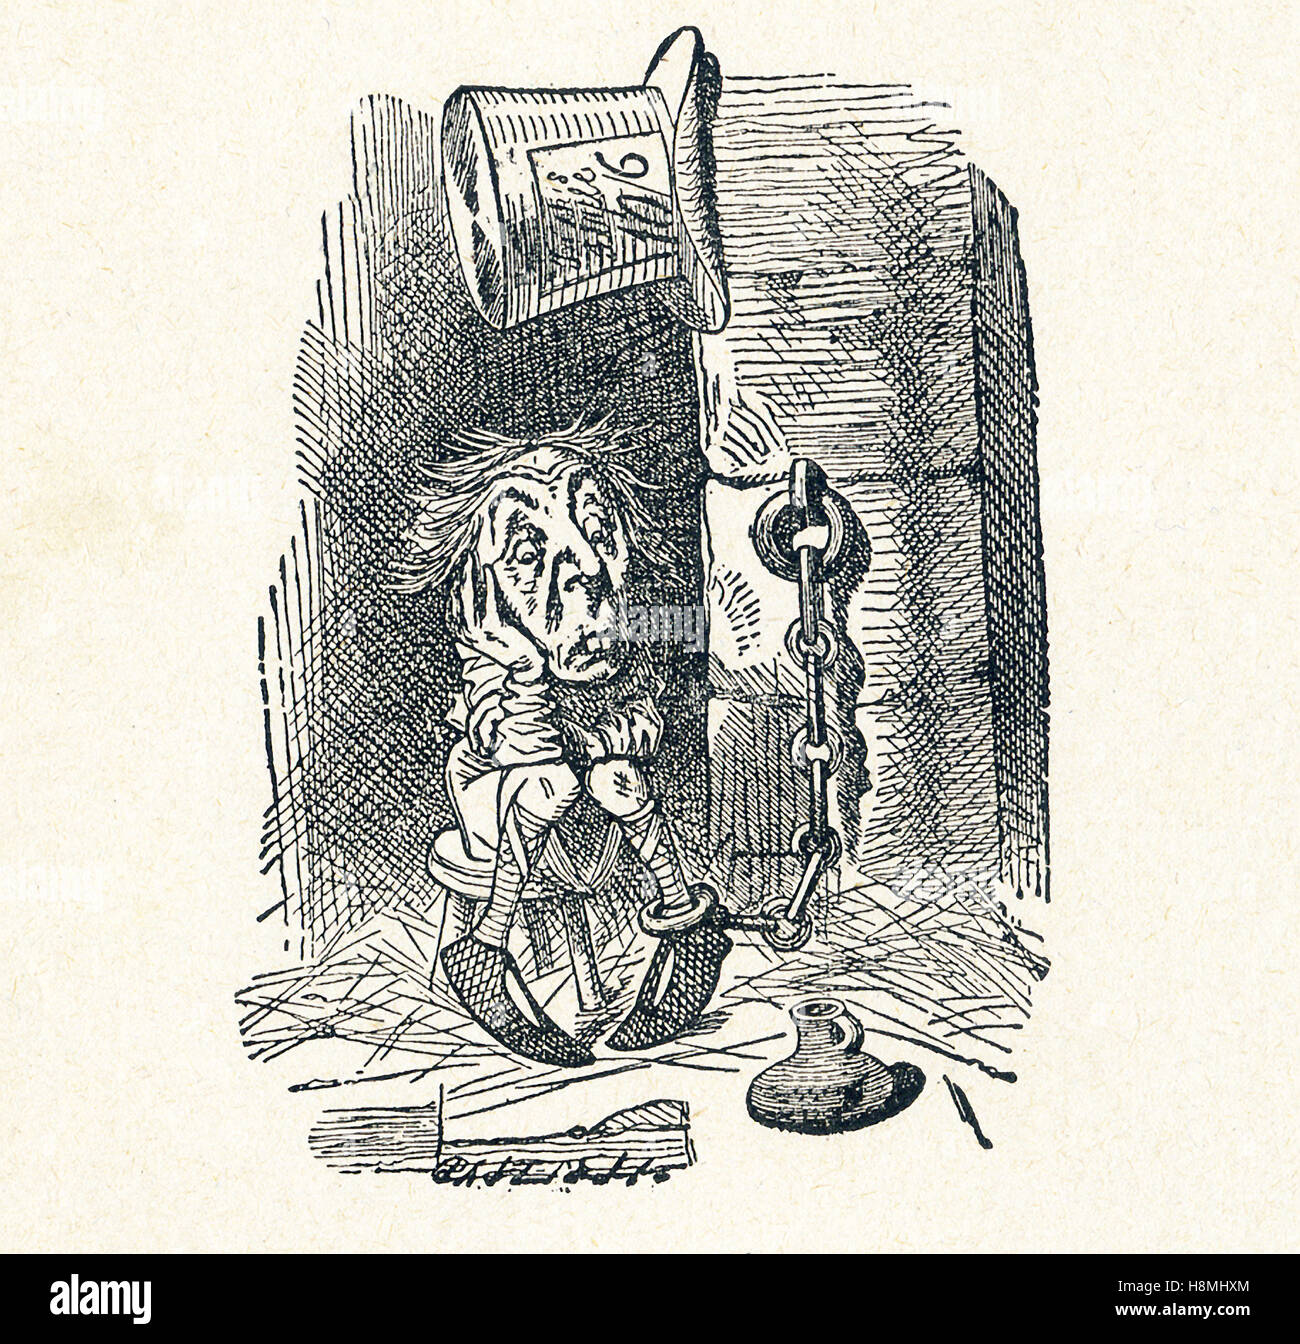 This is a scene from what Alice saw once she went through the Looking Glass and into the Looking Glass room in Lewis - Stock Image